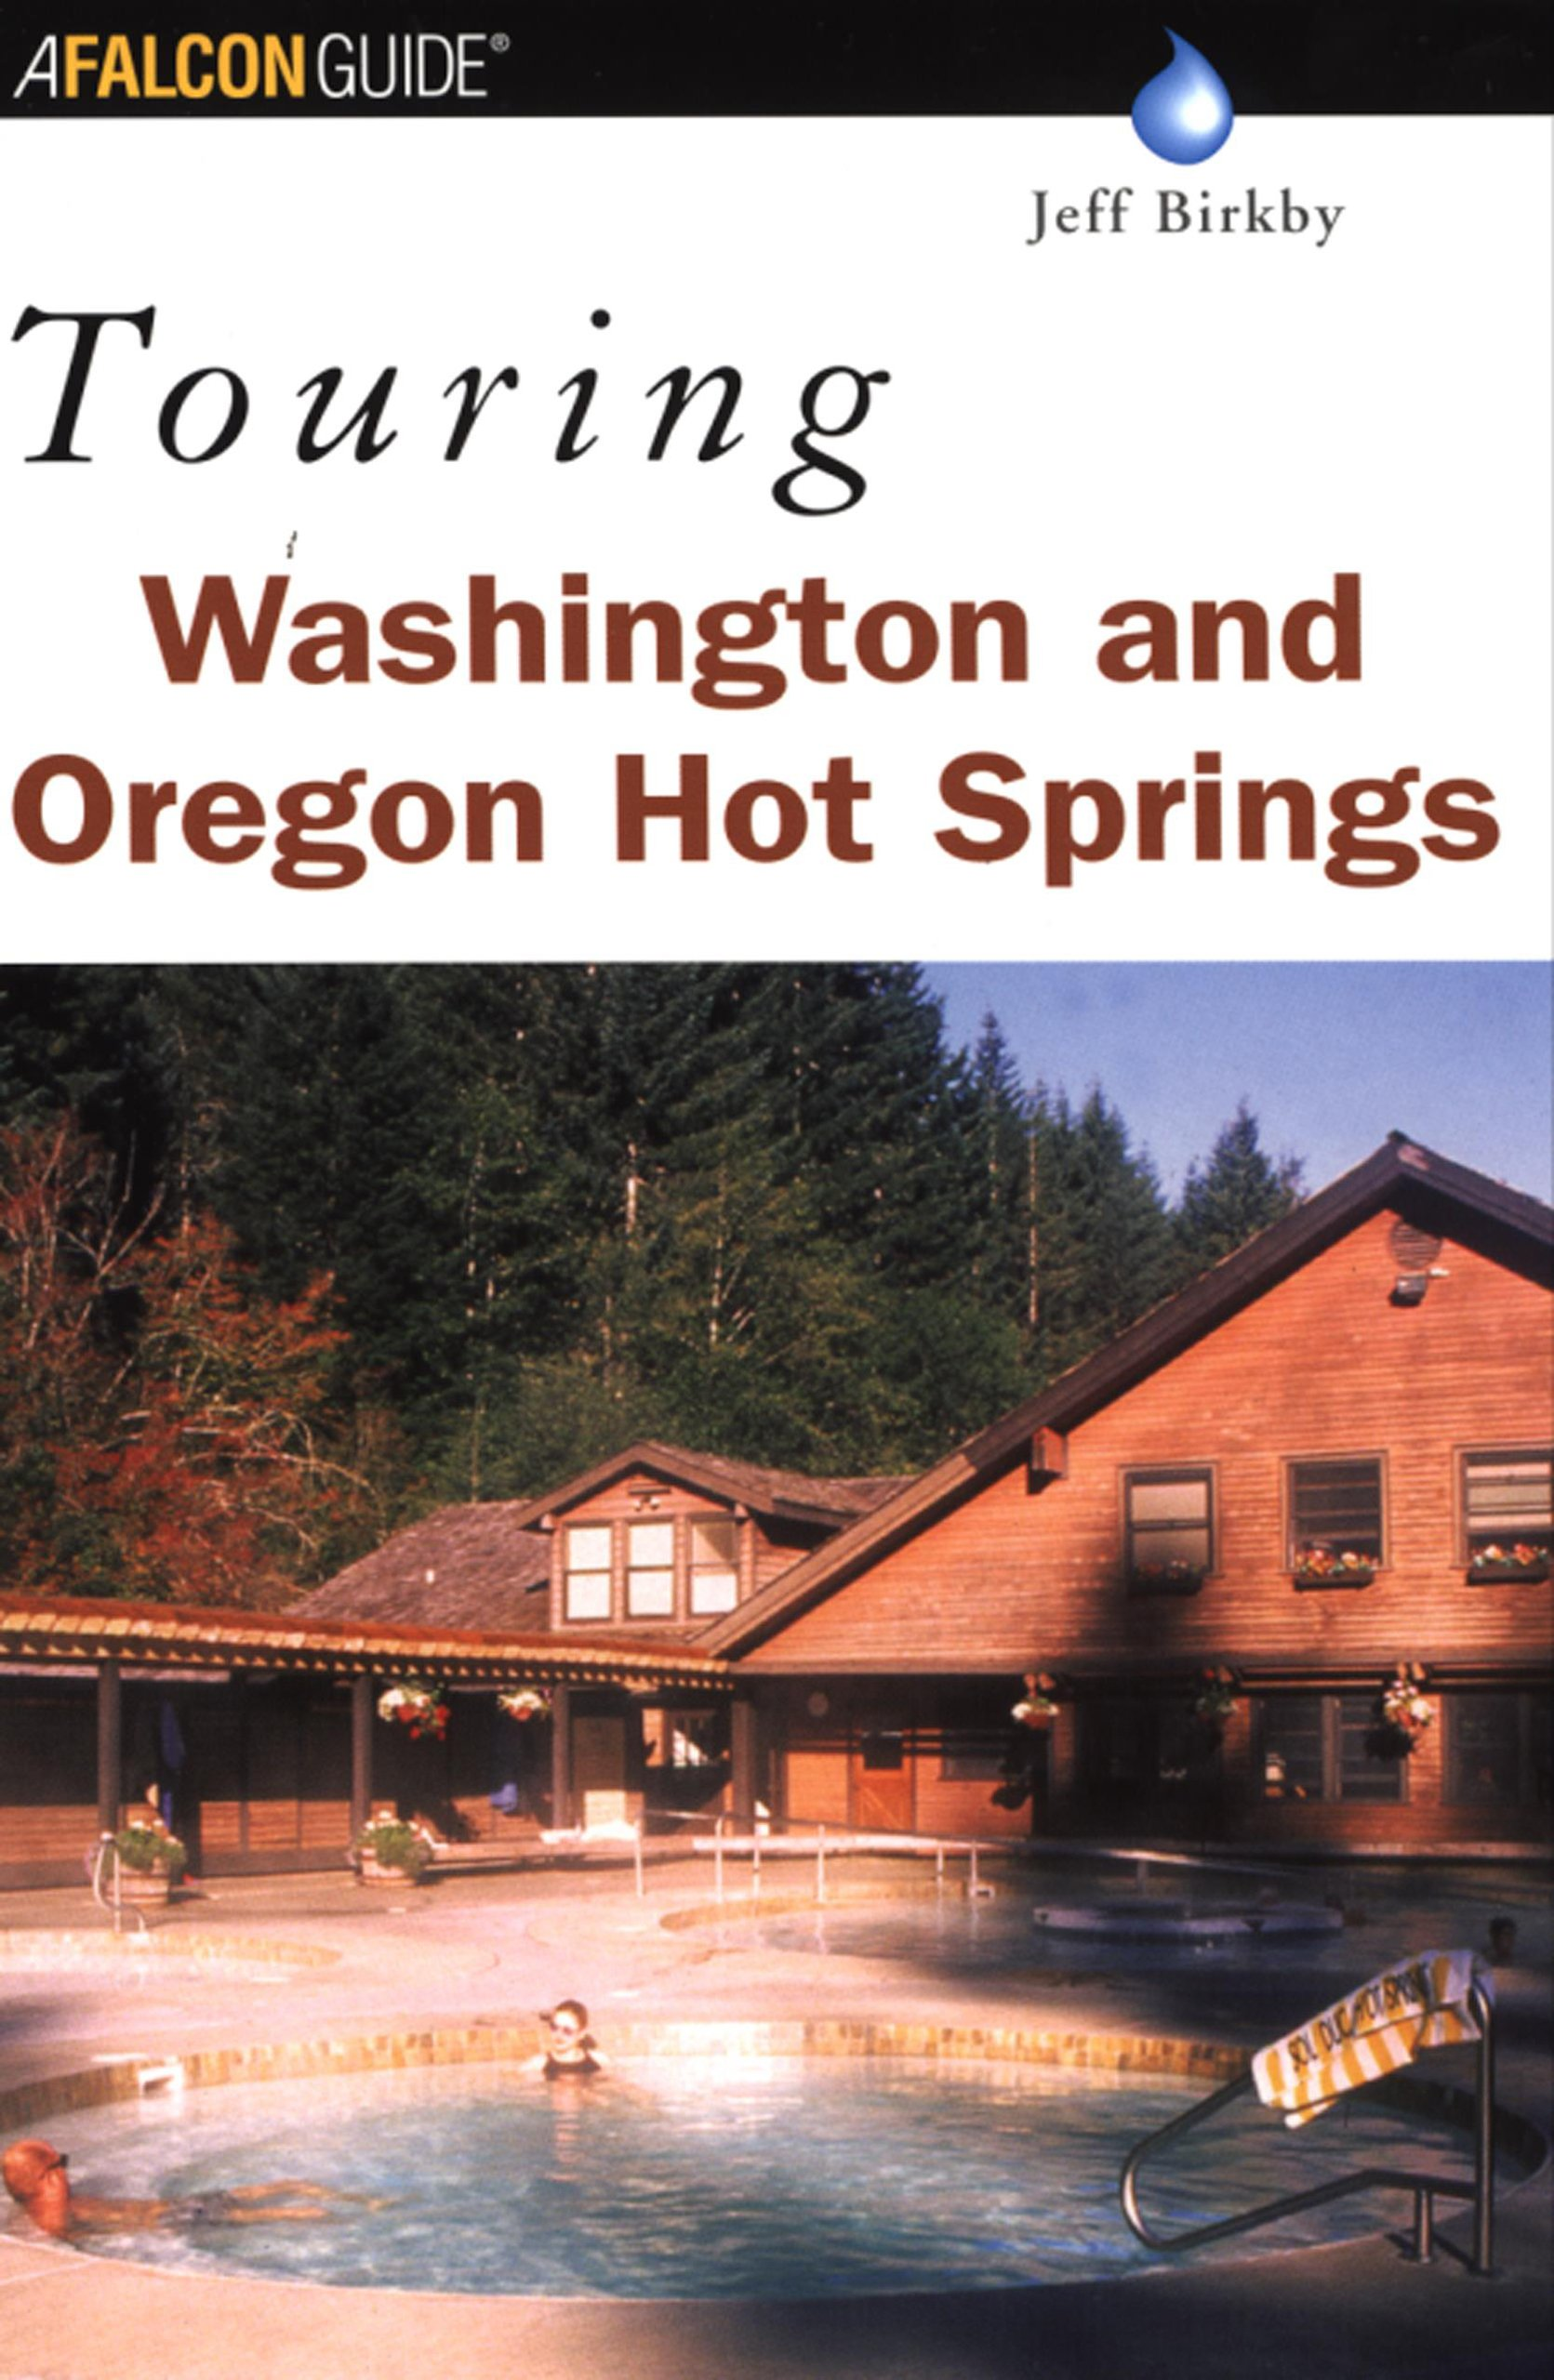 Touring Washington and Oregon Hot Springs (Touring Hot Springs) PDF